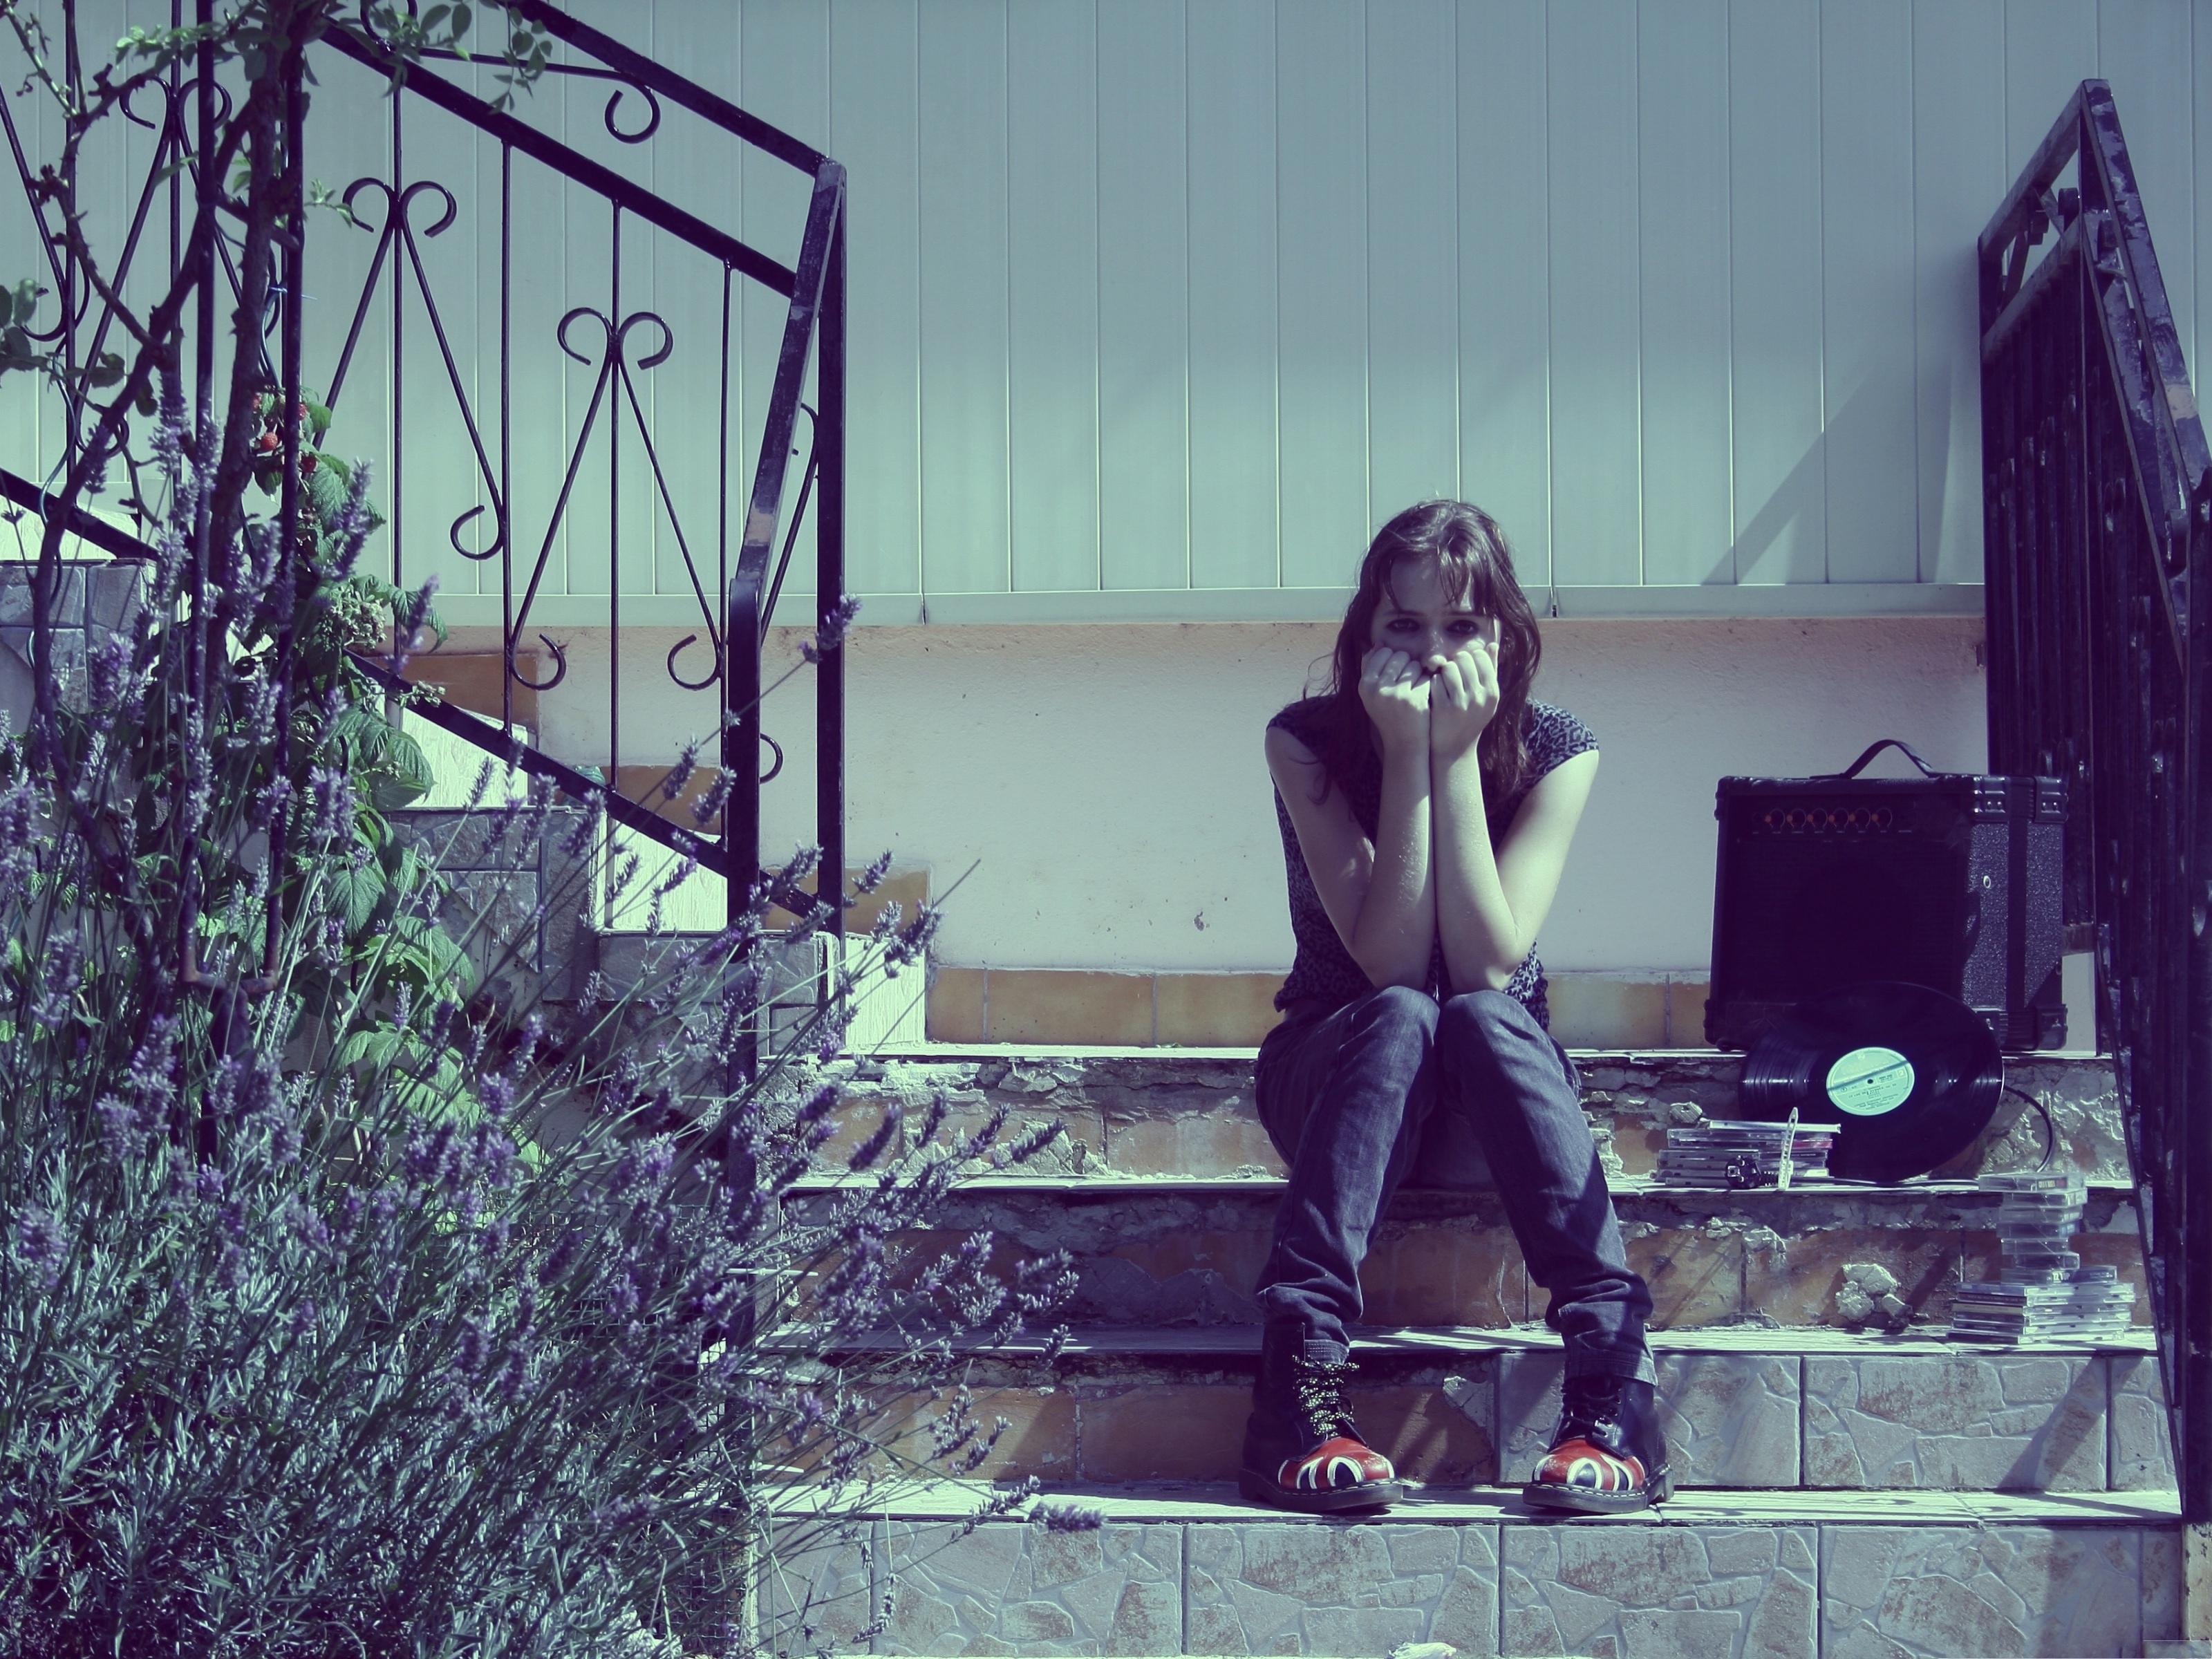 Sad Girl Images Sitting On Stairs She Is Crying With The Tape And